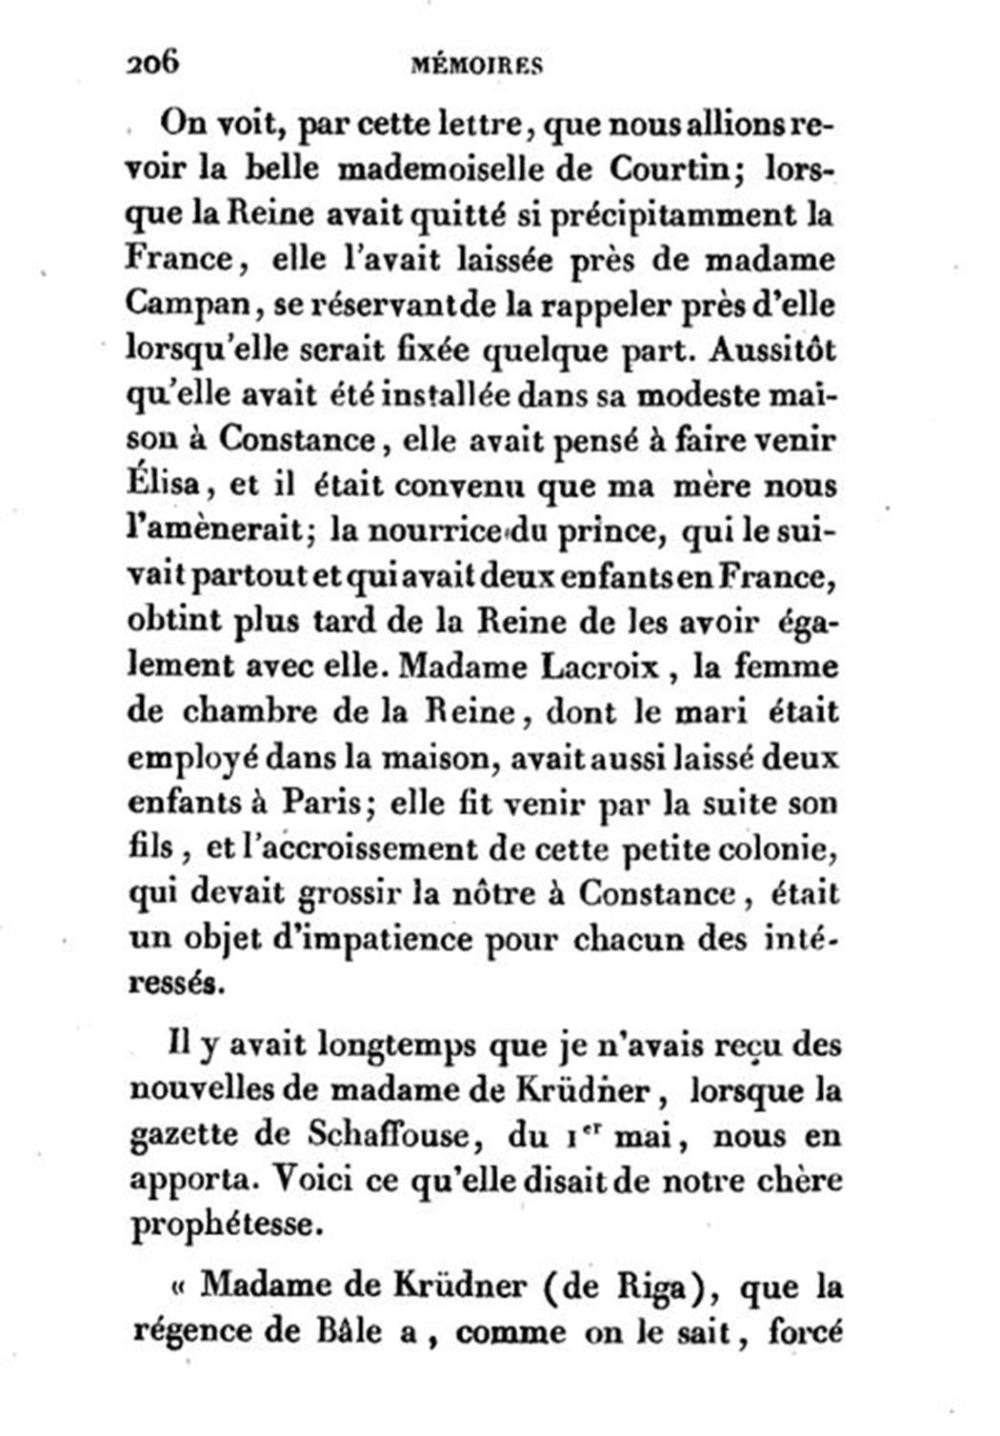 Several Strands of Napoleon's Hair with Remarkable Beauharnais Provenance, & Bizarre Tale Involving a Cross-Dressing Queen's Maid